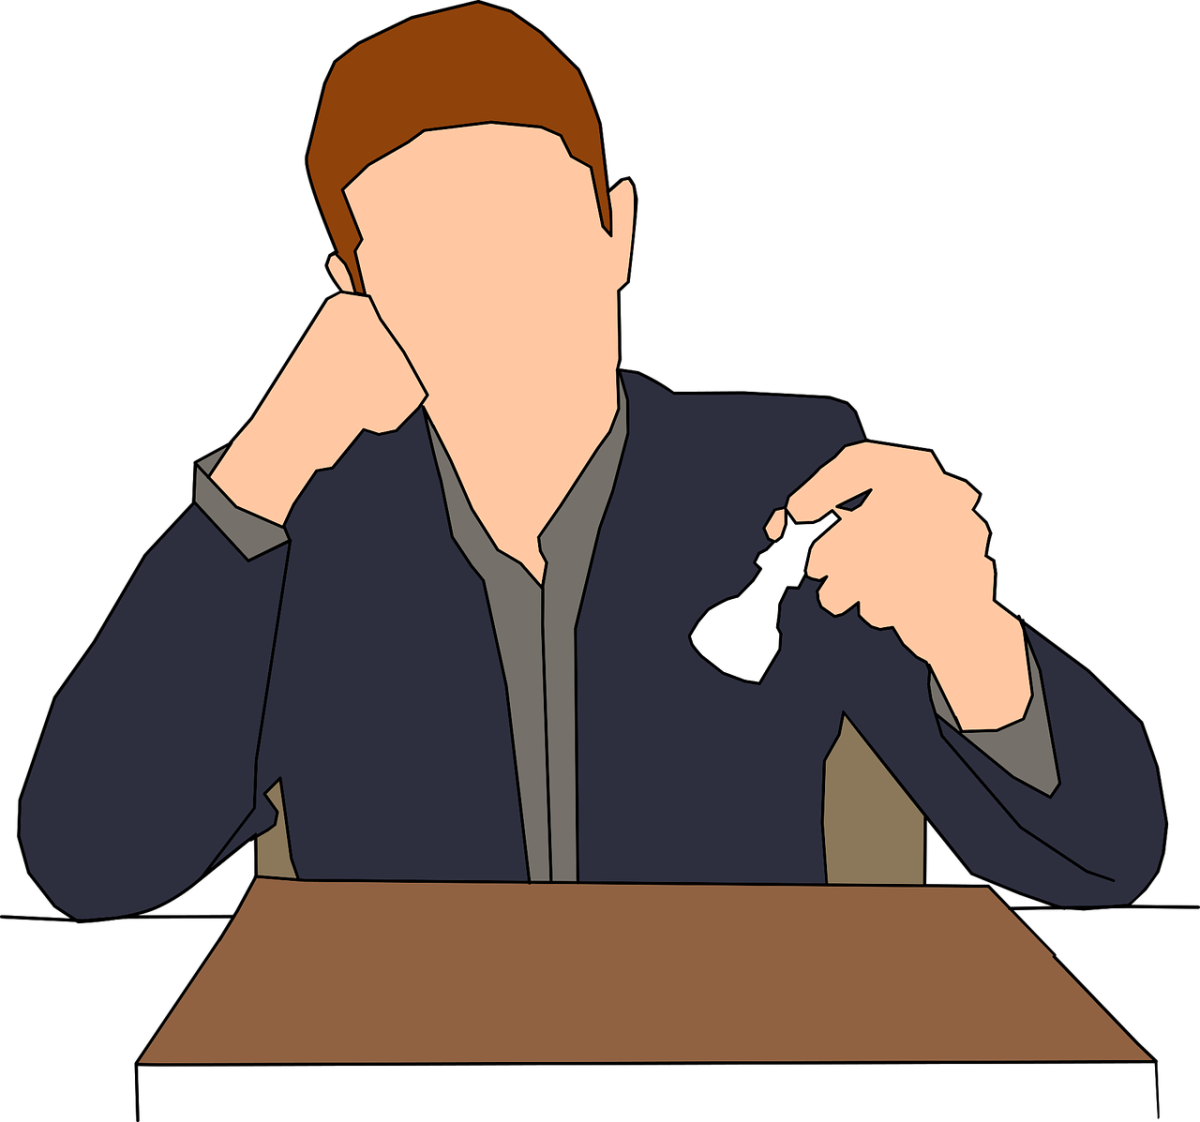 Clipart of a man playing chess